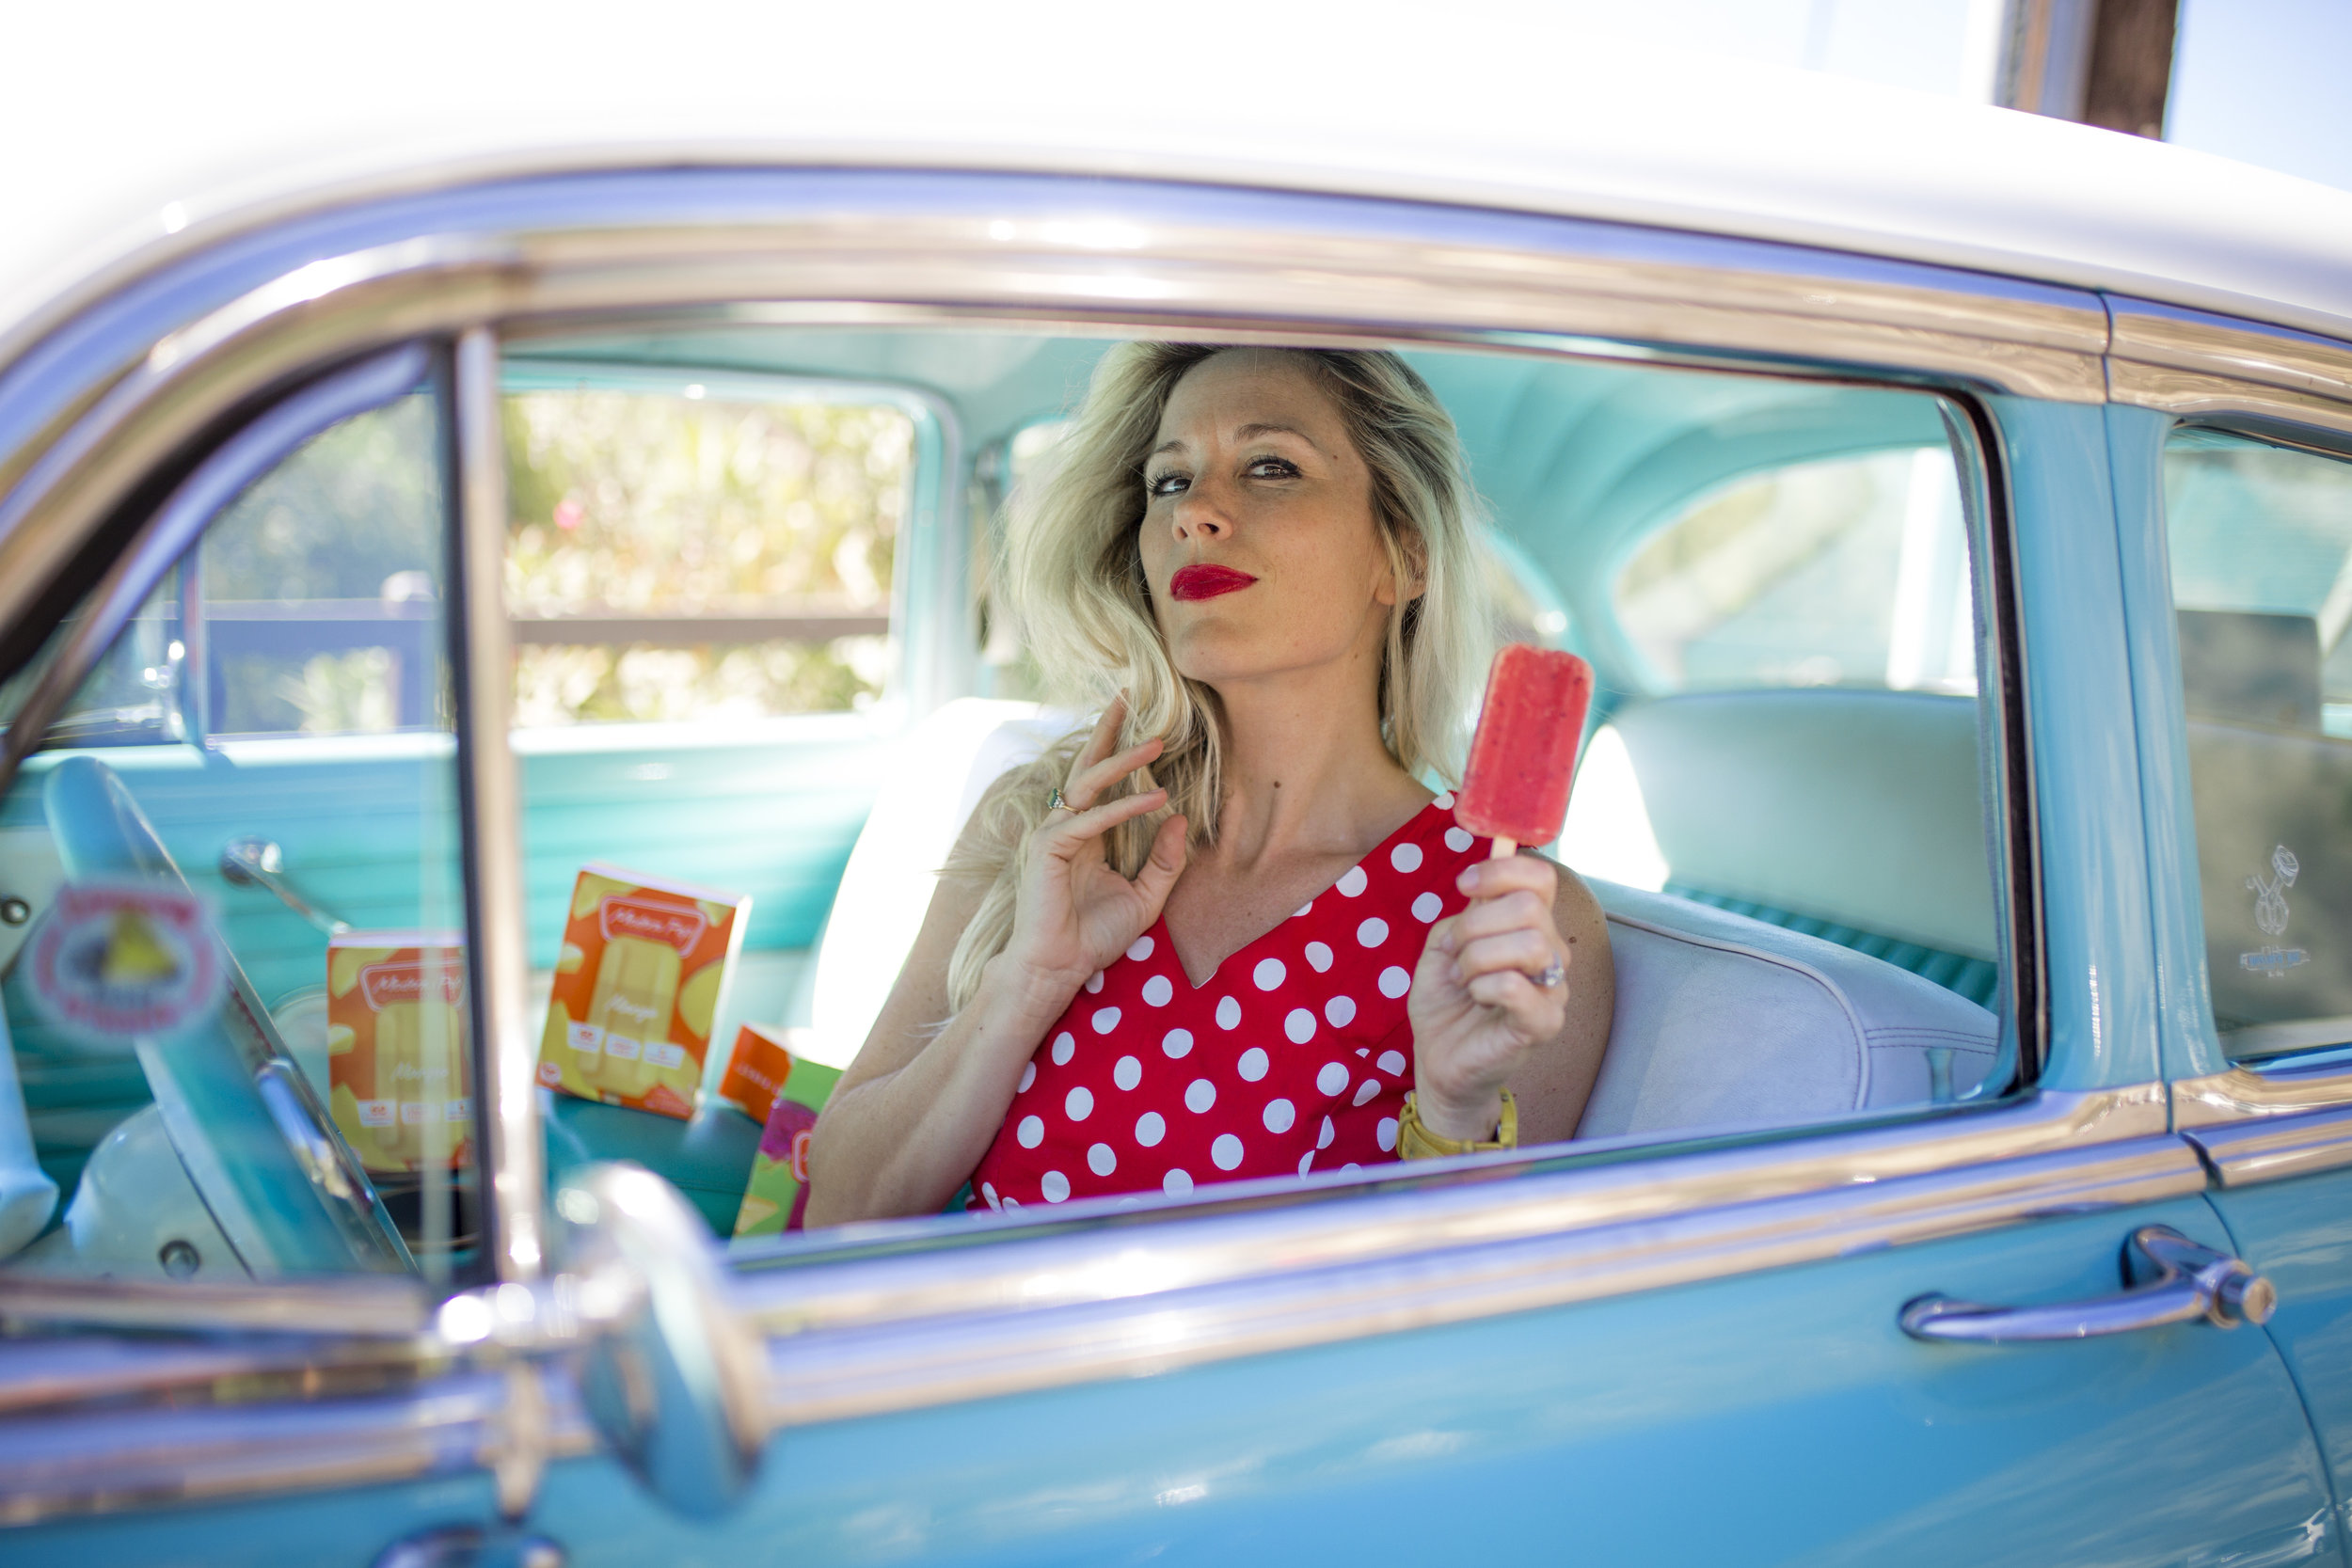 Podolec poses in a 1954 Chevy BelAire Sedan owned by Gil and Bernie Travis, for Mommy In Los Angeles Magazine's photo shoot in Laguna Beach.